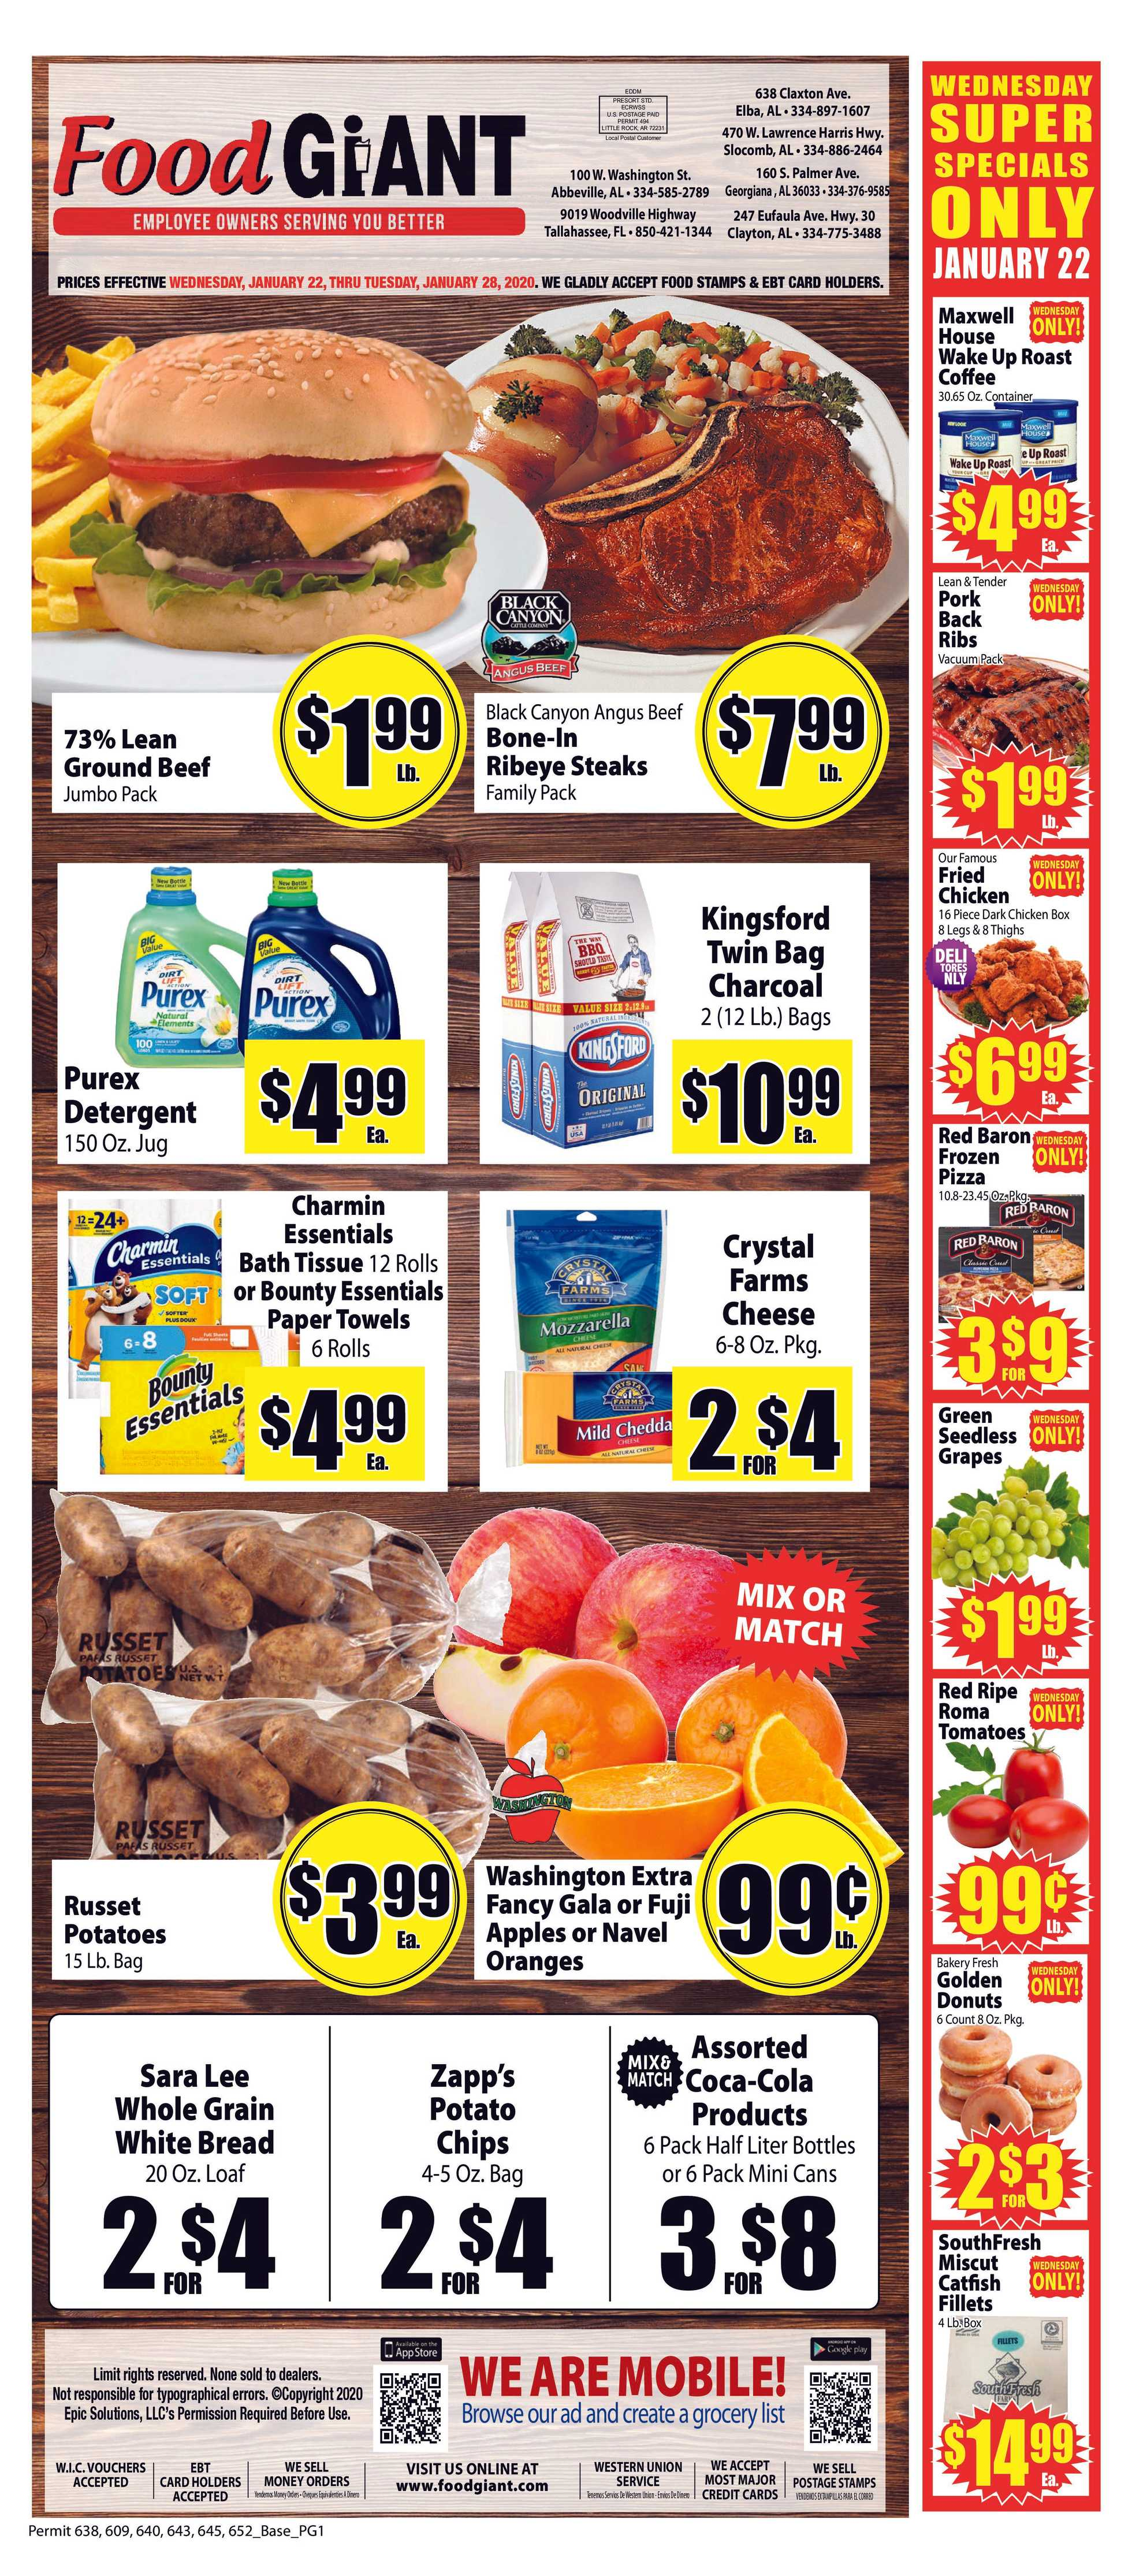 Food Giant - promo starting from 01/22/20 to 01/28/20 - page 1.